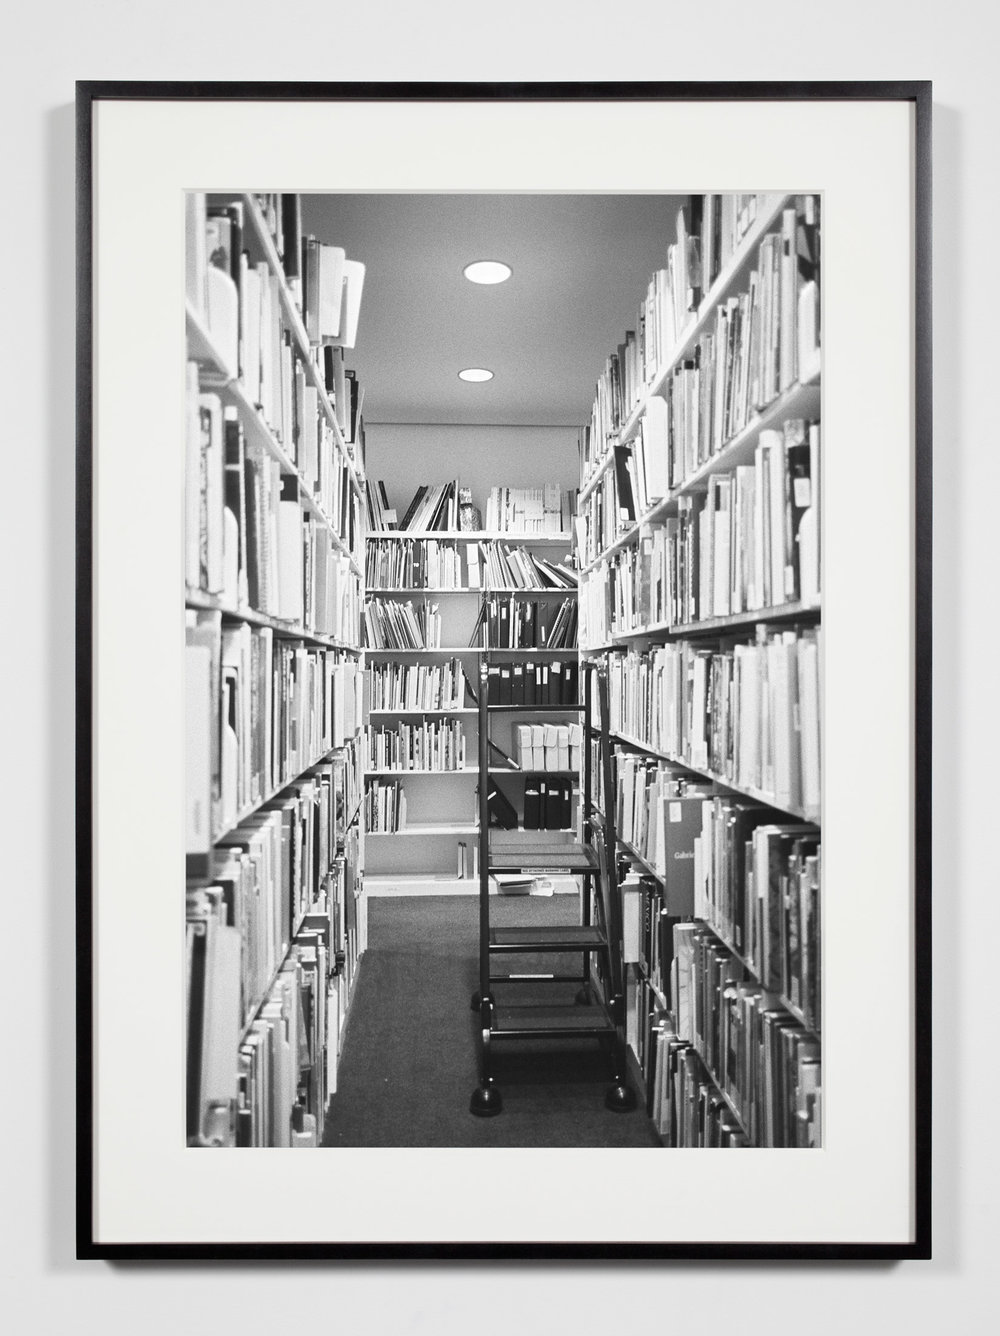 Museum Library Stacks, Washington, District of Columbia, August 18, 2008    2011   Epson Ultrachrome K3 archival ink jet print on Hahnemühle Photo Rag paper  36 3/8 x 26 3/8 inches   A Diagram of Forces, 2011